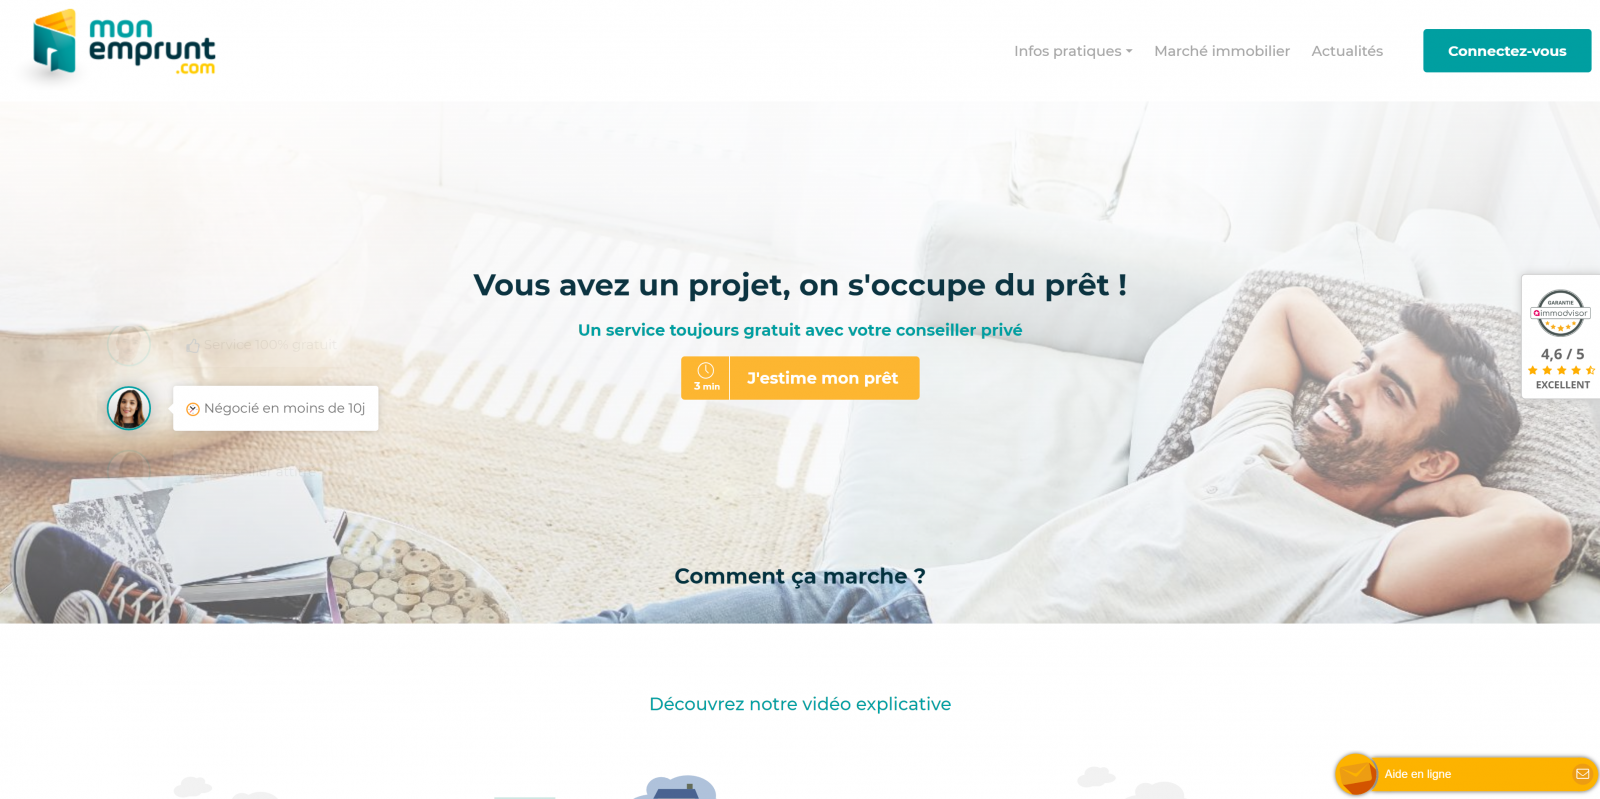 Empruntis Crédit Immobilier Aves Courtier